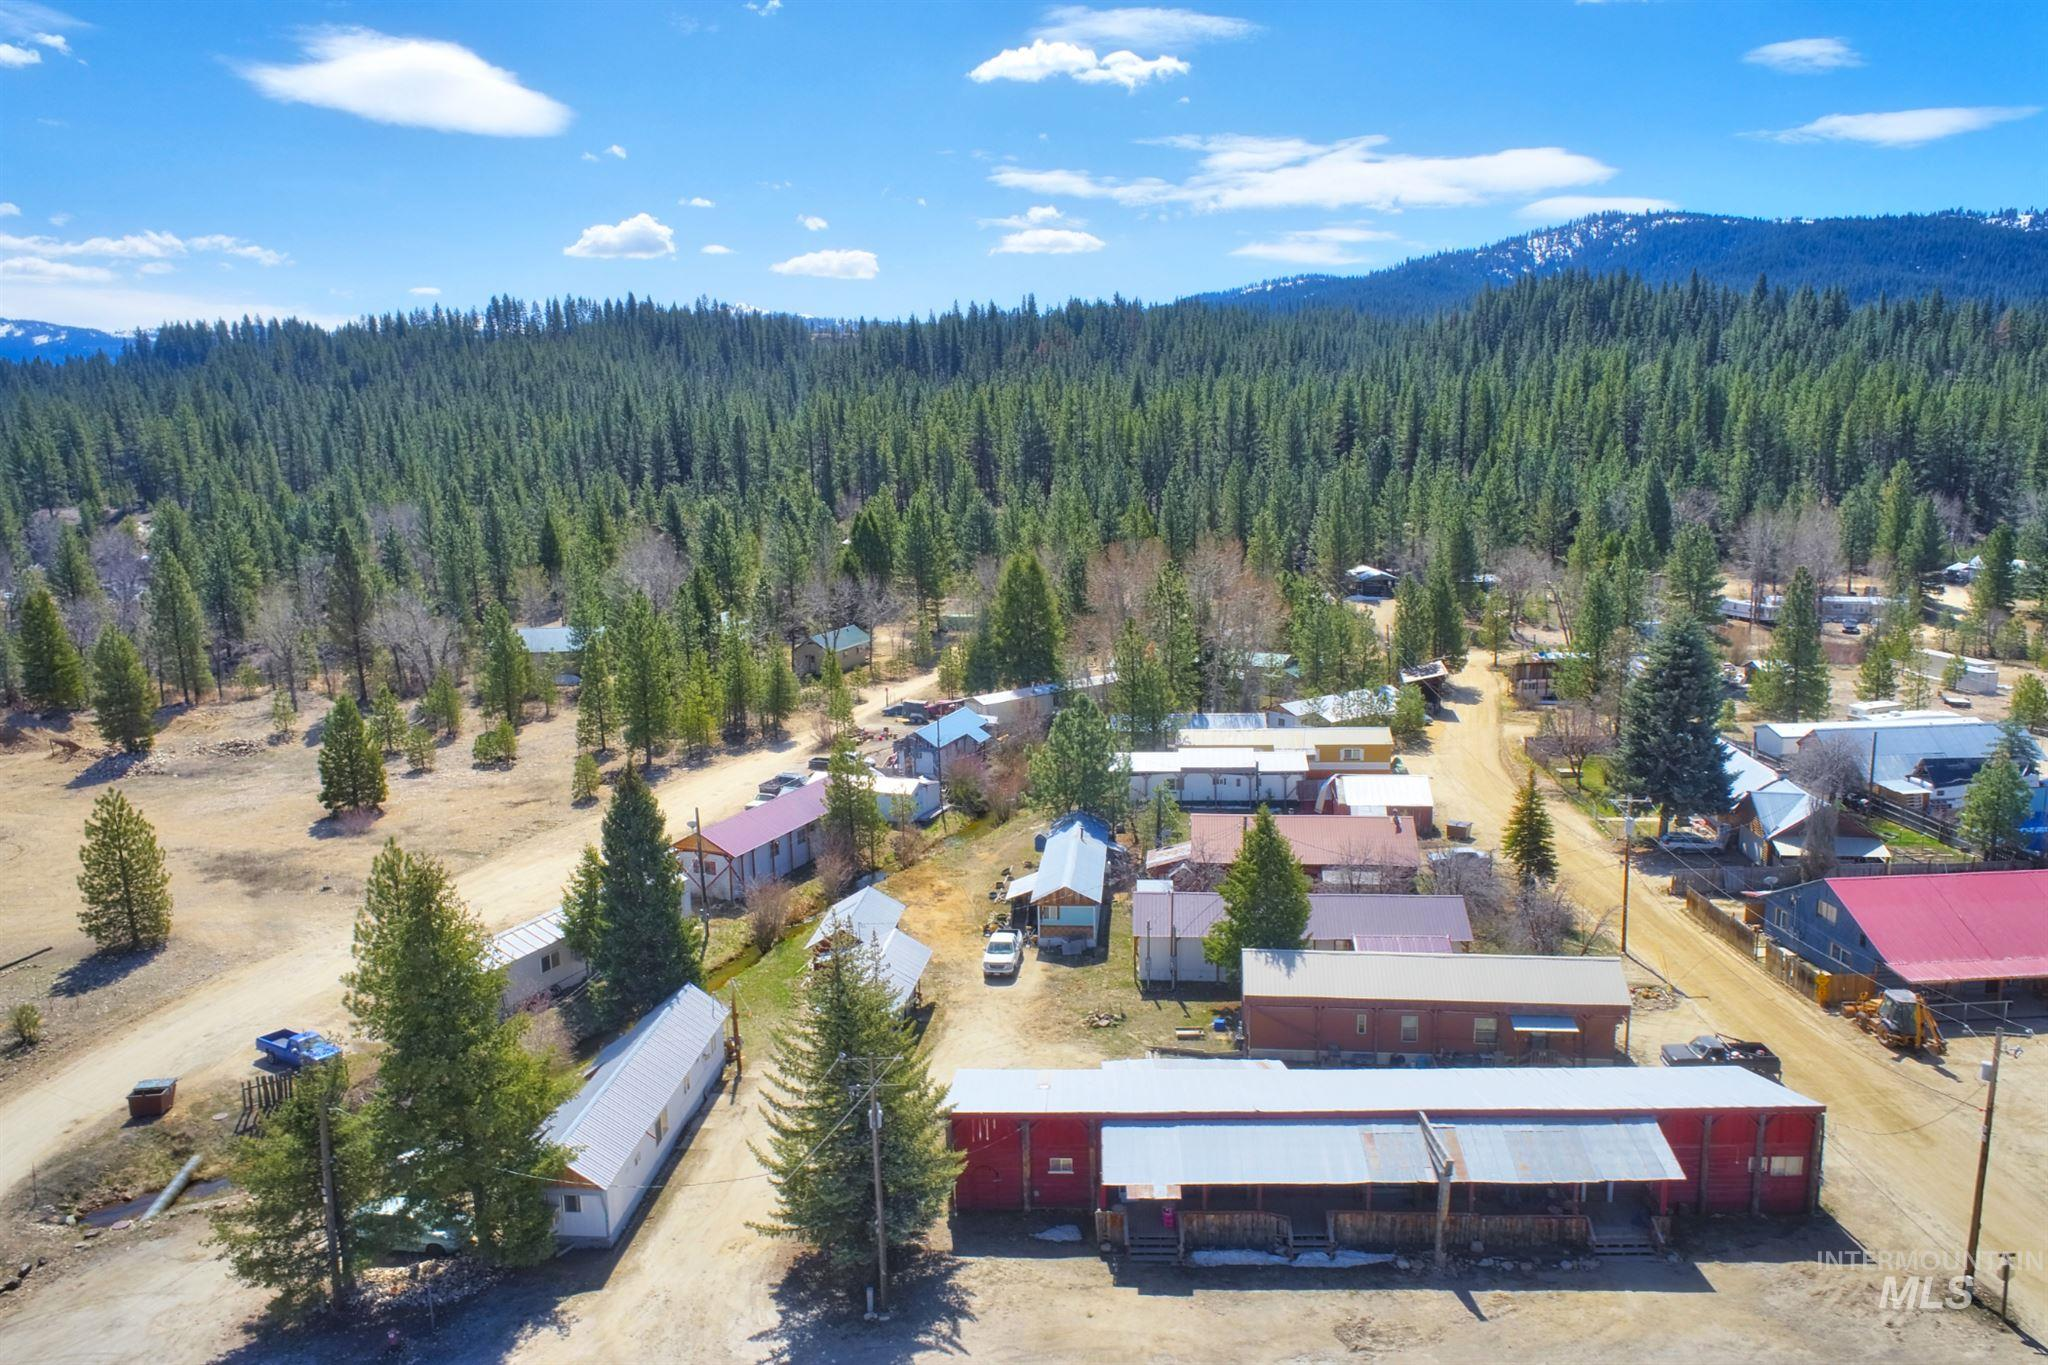 3873 Hwy 21 Property Photo - Idaho City, ID real estate listing